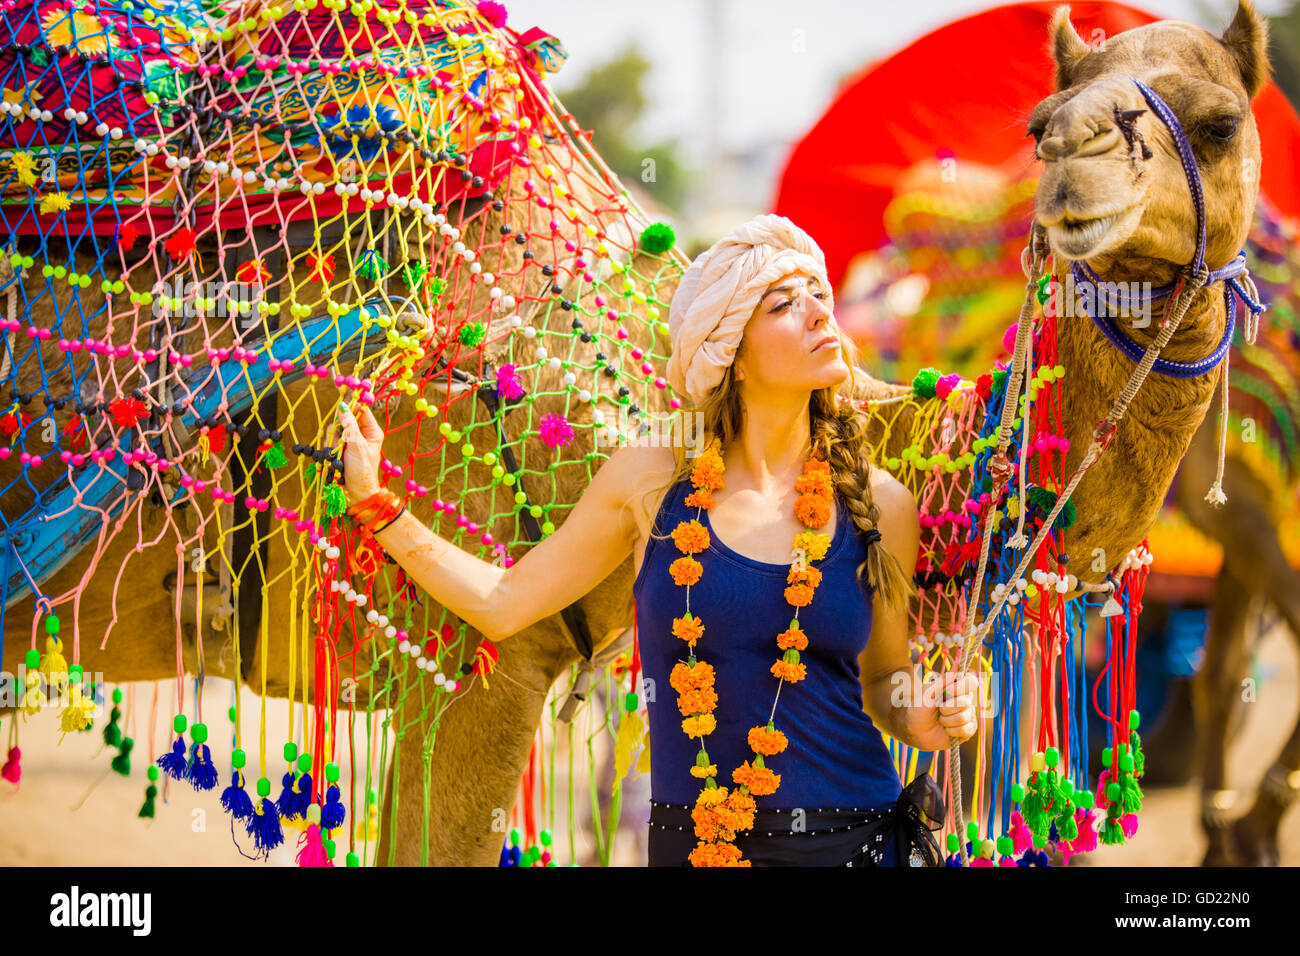 Laura Grier with camel at the Pushkar Camel Fair, Pushkar, Rajasthan, India, Asia - Stock Image